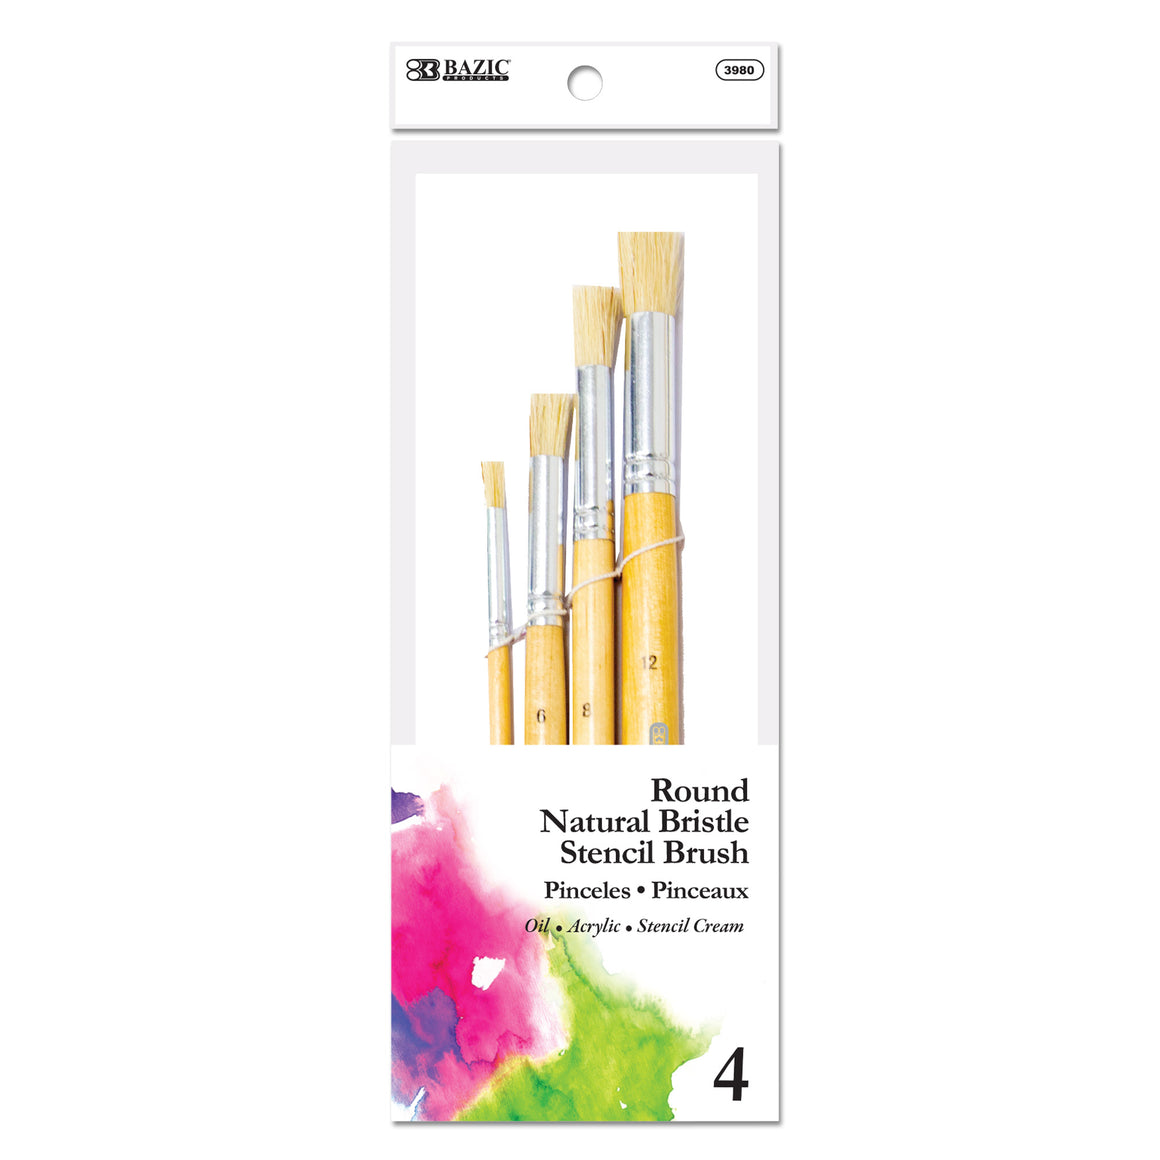 Round Natural Bristle Stencil Brush (4/Pack) - Bazicstore